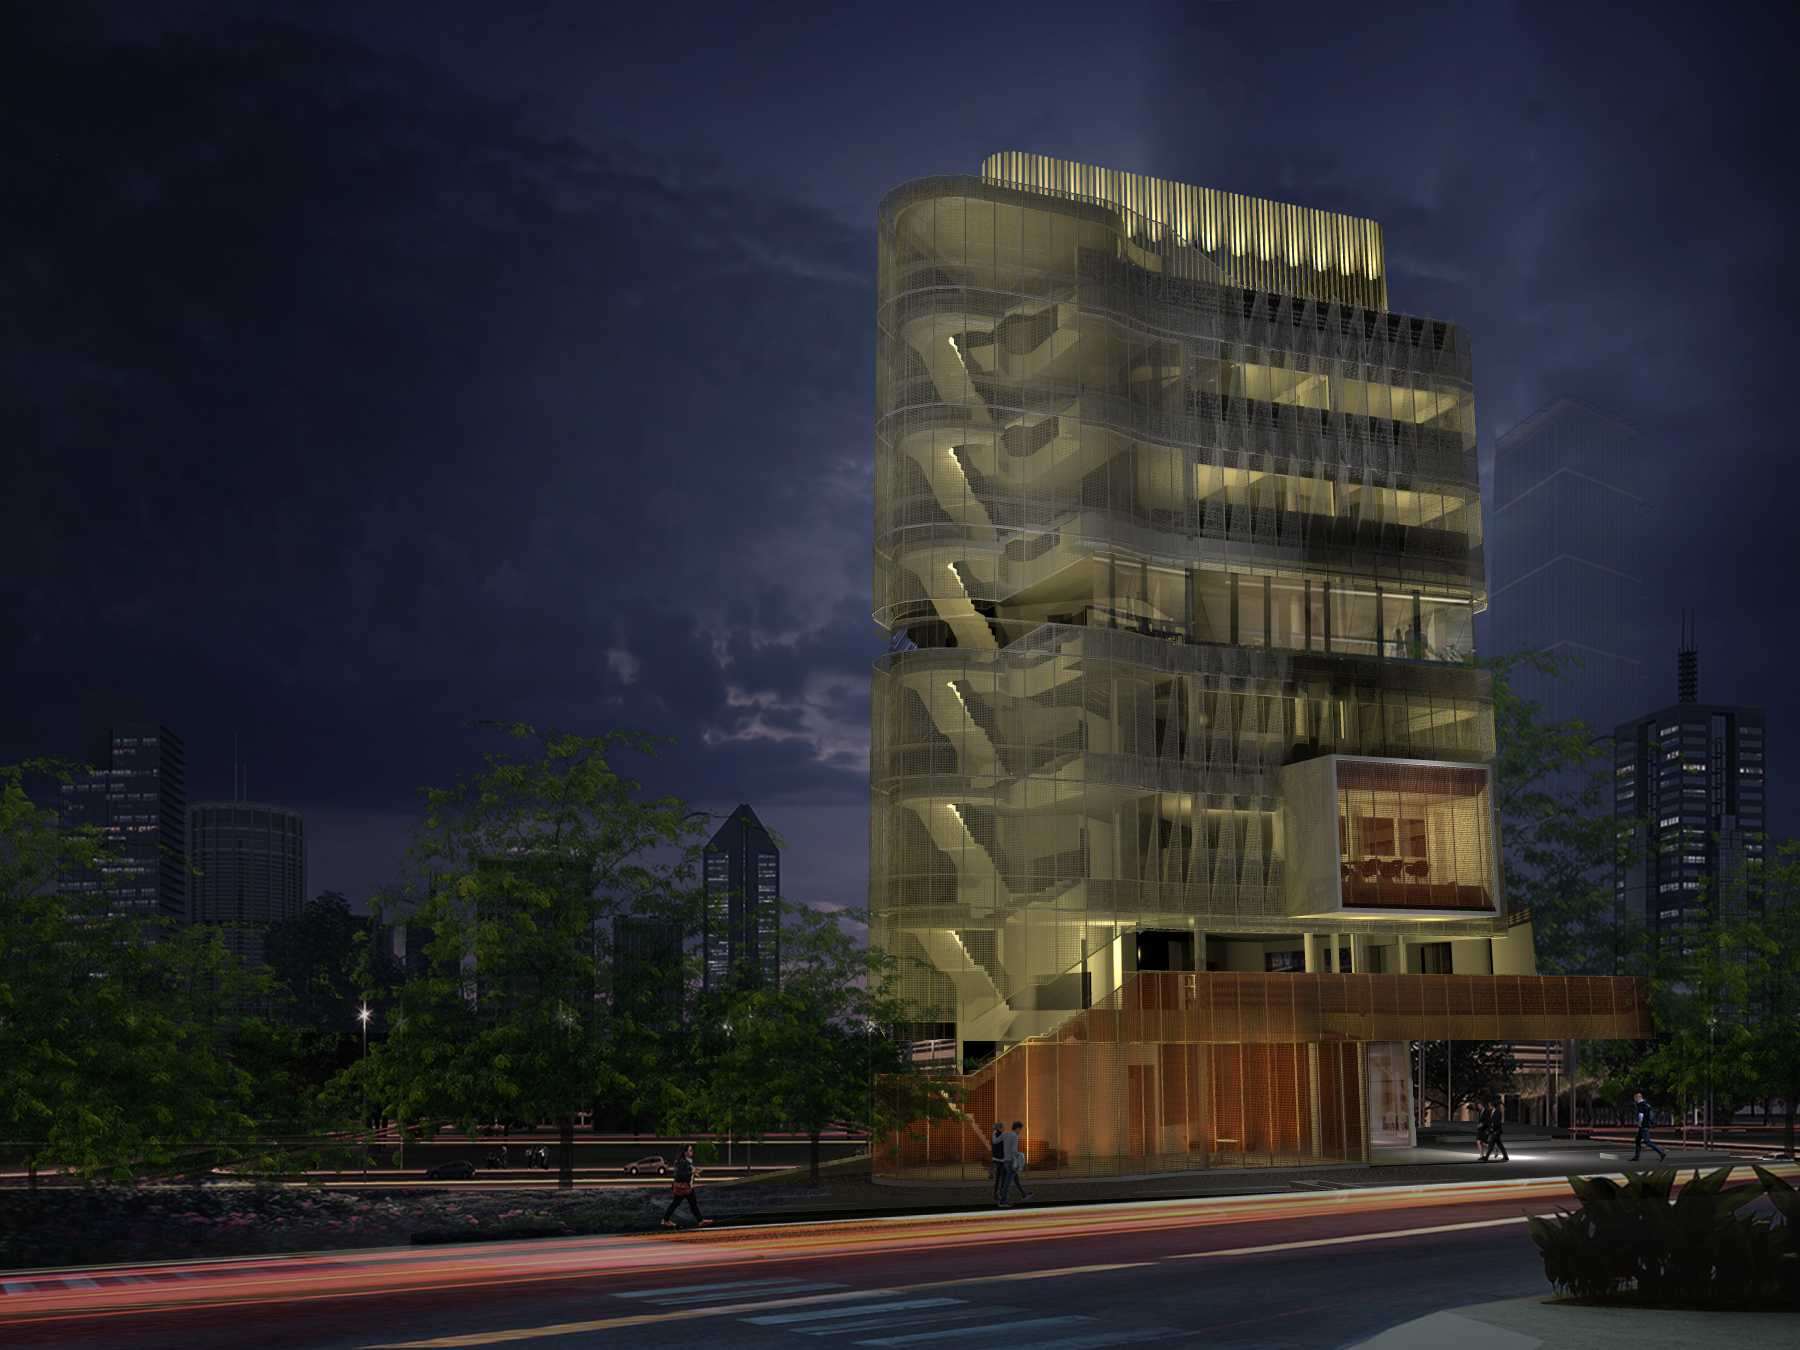 Monokroma Architect Eku Headquarter Jakarta Jakarta 3-Night-Perspective Modern  14788